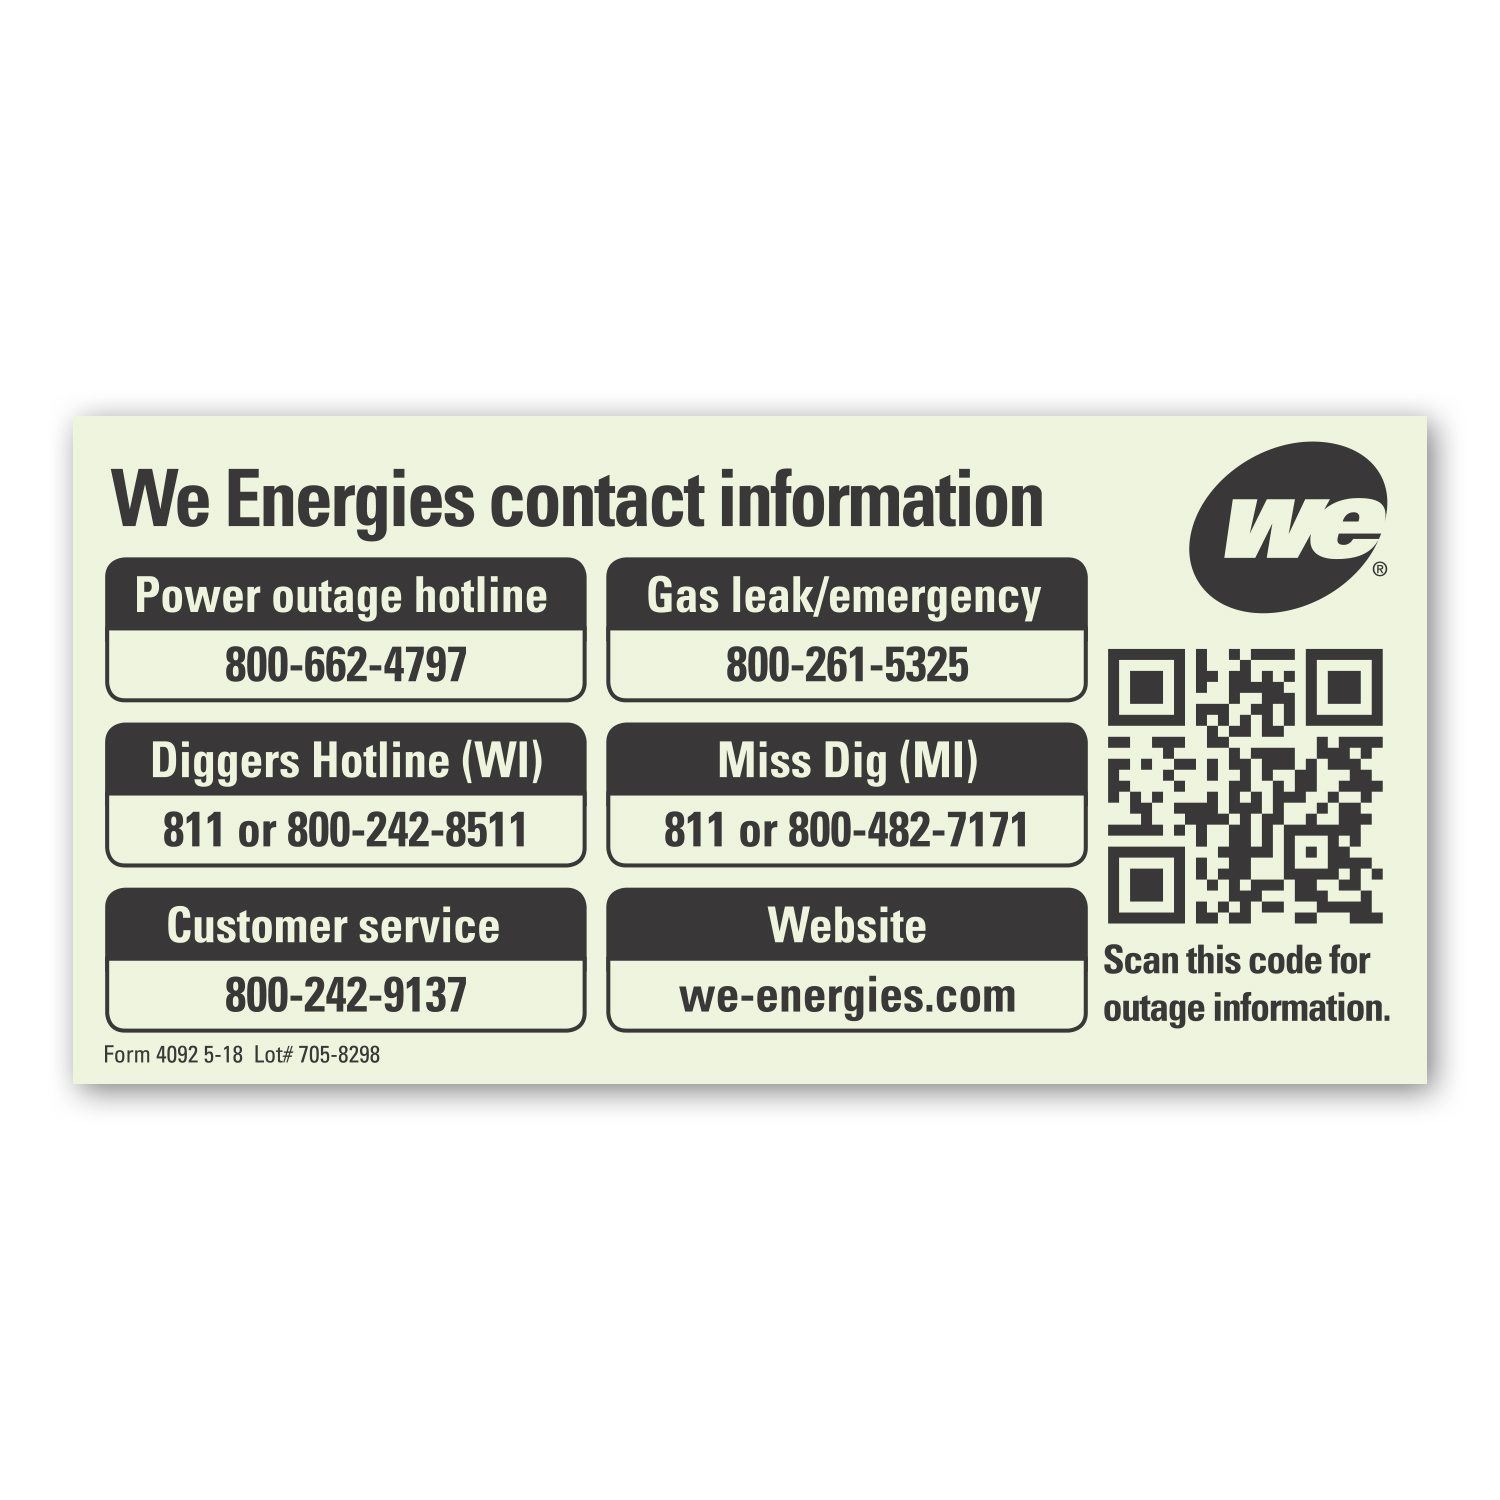 "• GLCST Custom Glow-in-the-Dark Magnet, 2.343"" x 4.75"", .025 thickness  • 20,000 piece order for We Energies to send out to their customers with contact information in case of an emergency."